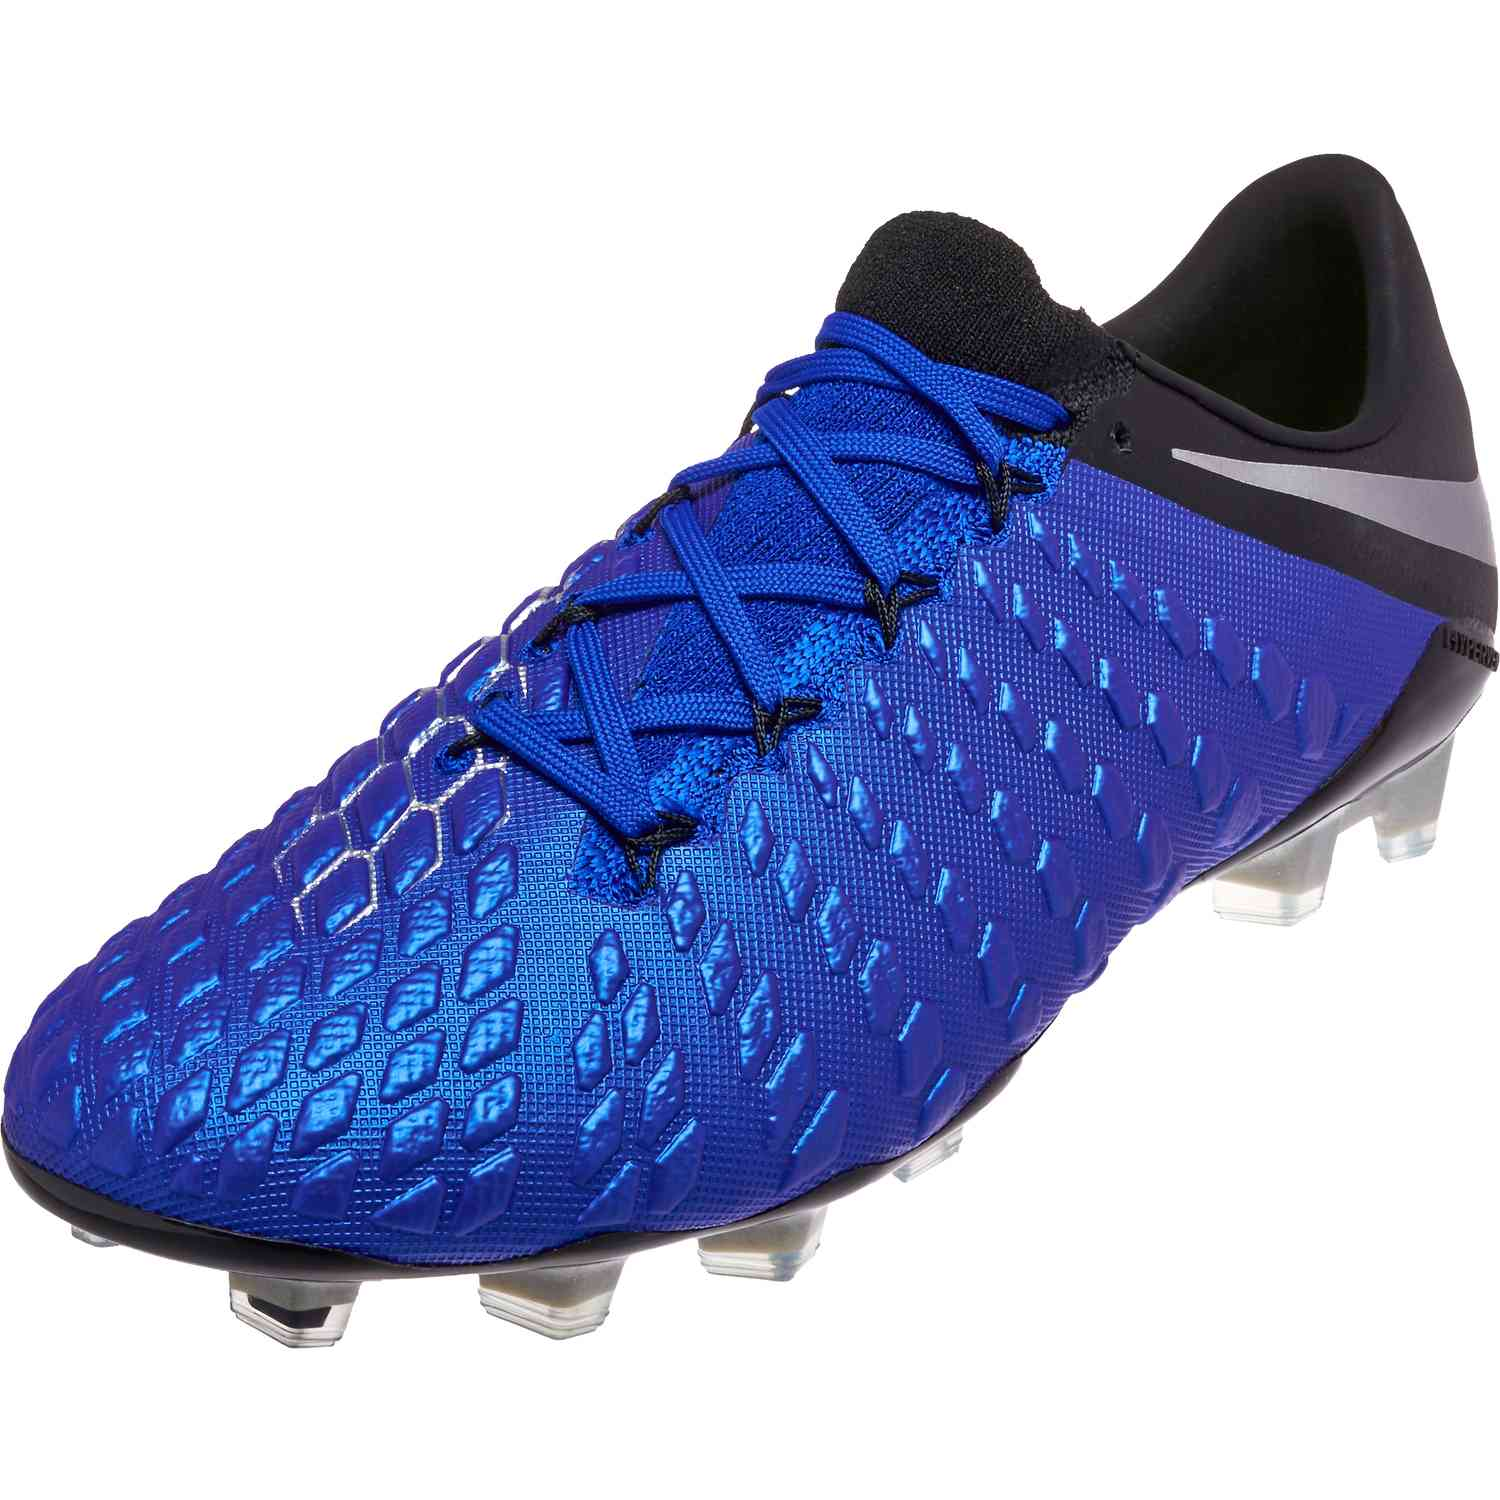 51c6ee1fb5e5 Nike Phantom 3 Elite FG - Racer Blue Metallic Silver Black Volt ...